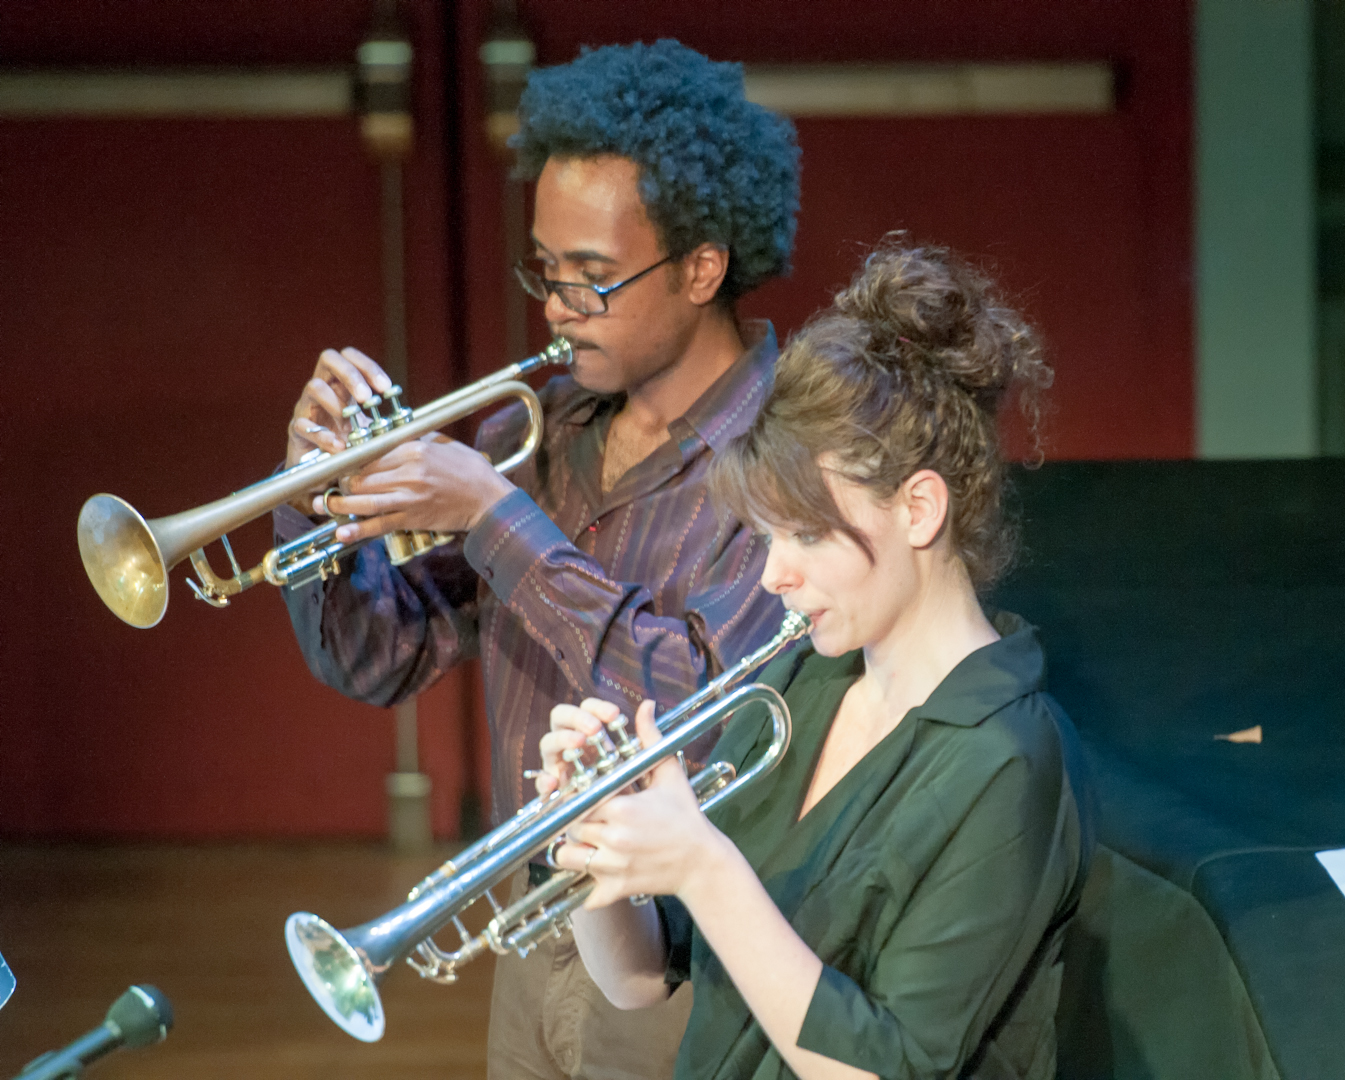 Jonathan Finlayson And Stephanie Richards With Henry Threadgill And Zooid At Roulette